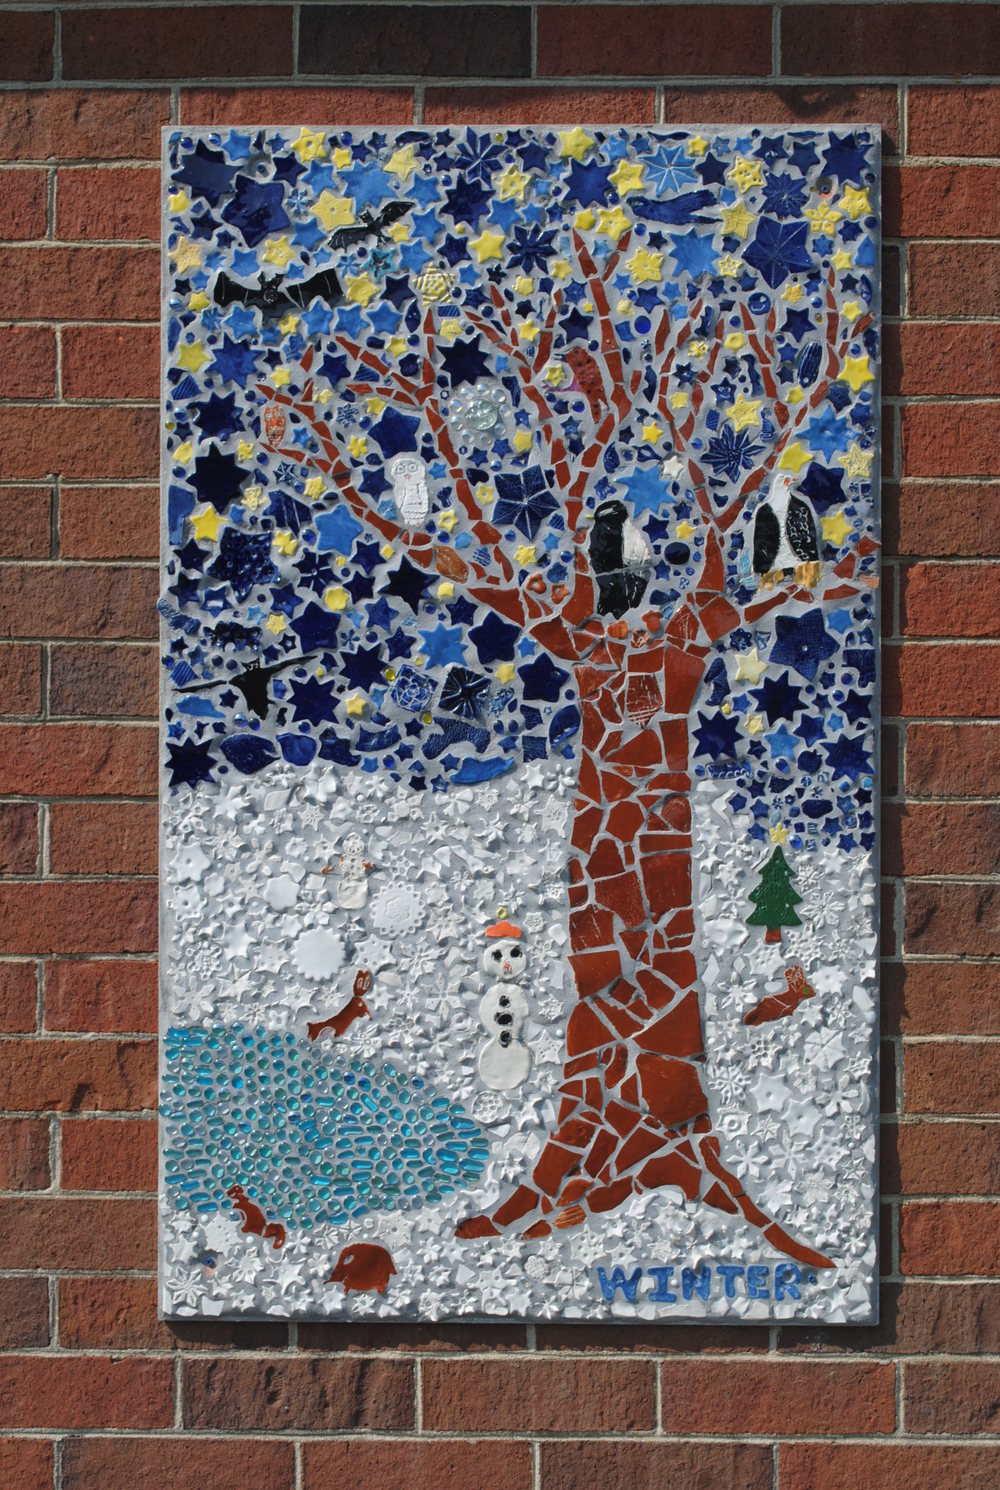 Winter mosaic panel